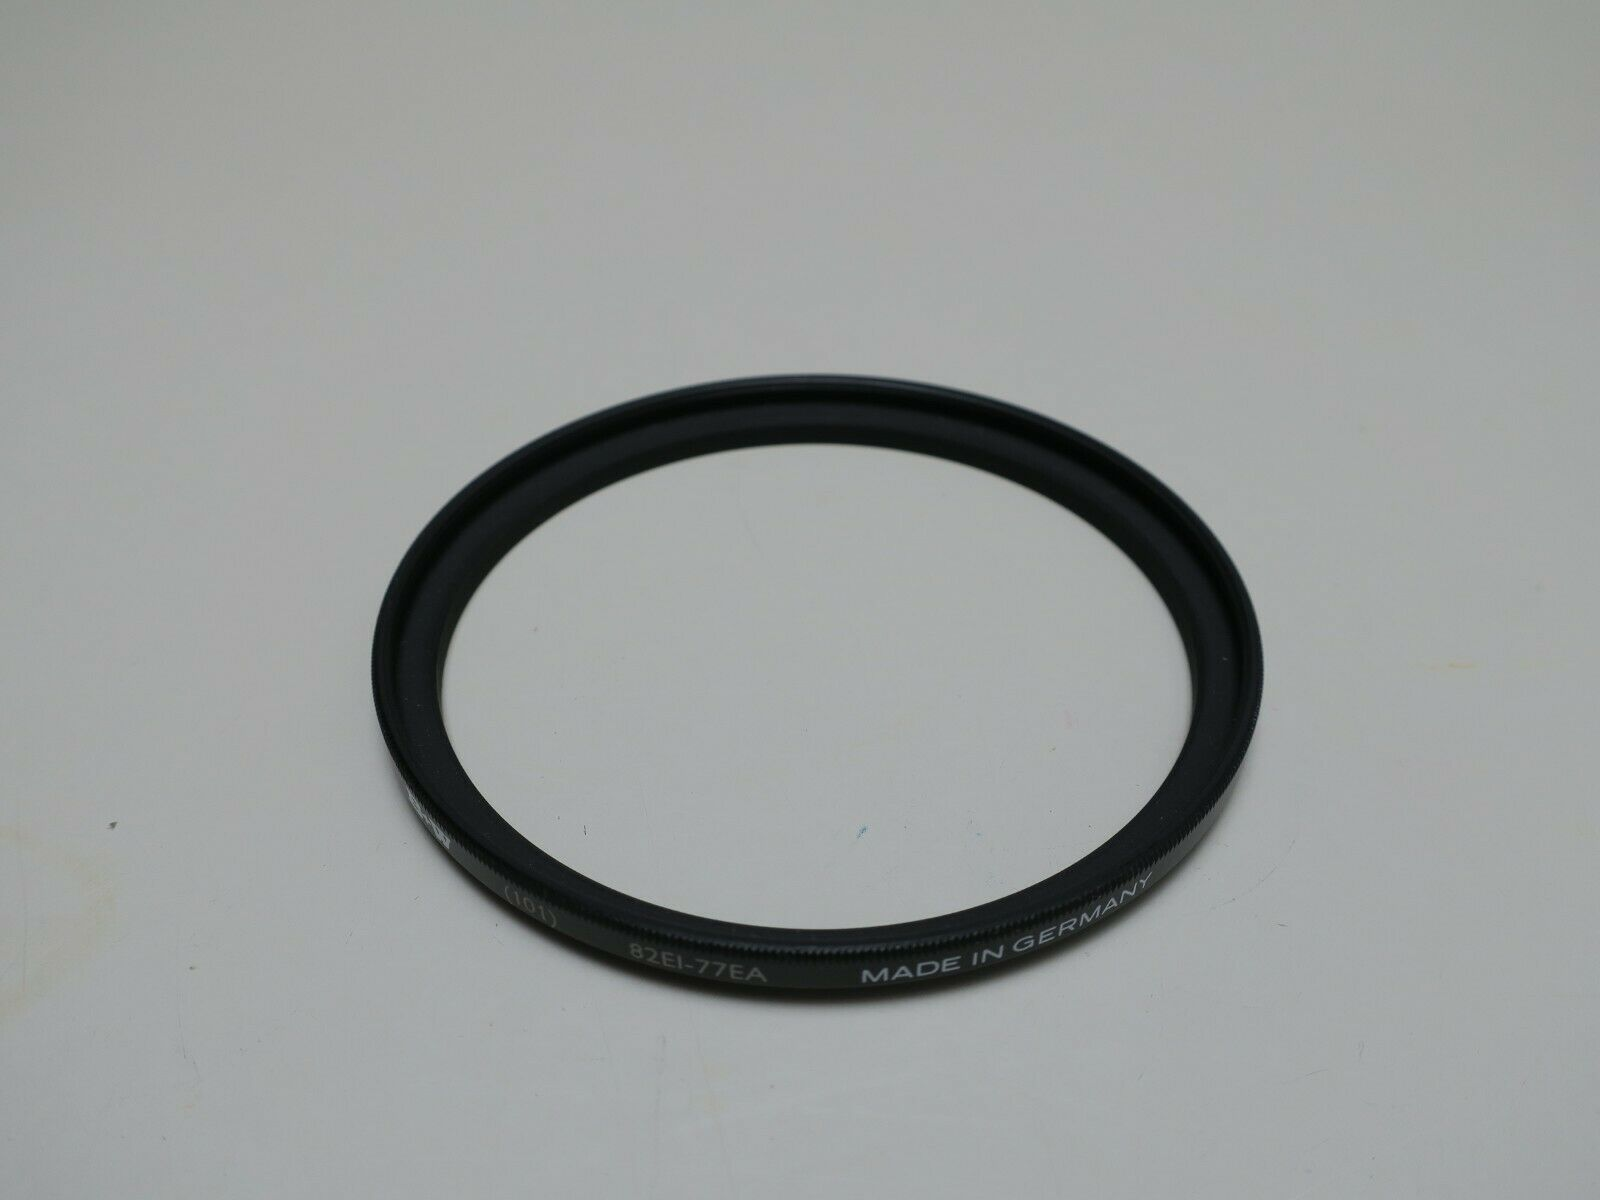 Sensei 49mm Lens to 82mm Filter Step-Up Ring 6 Pack